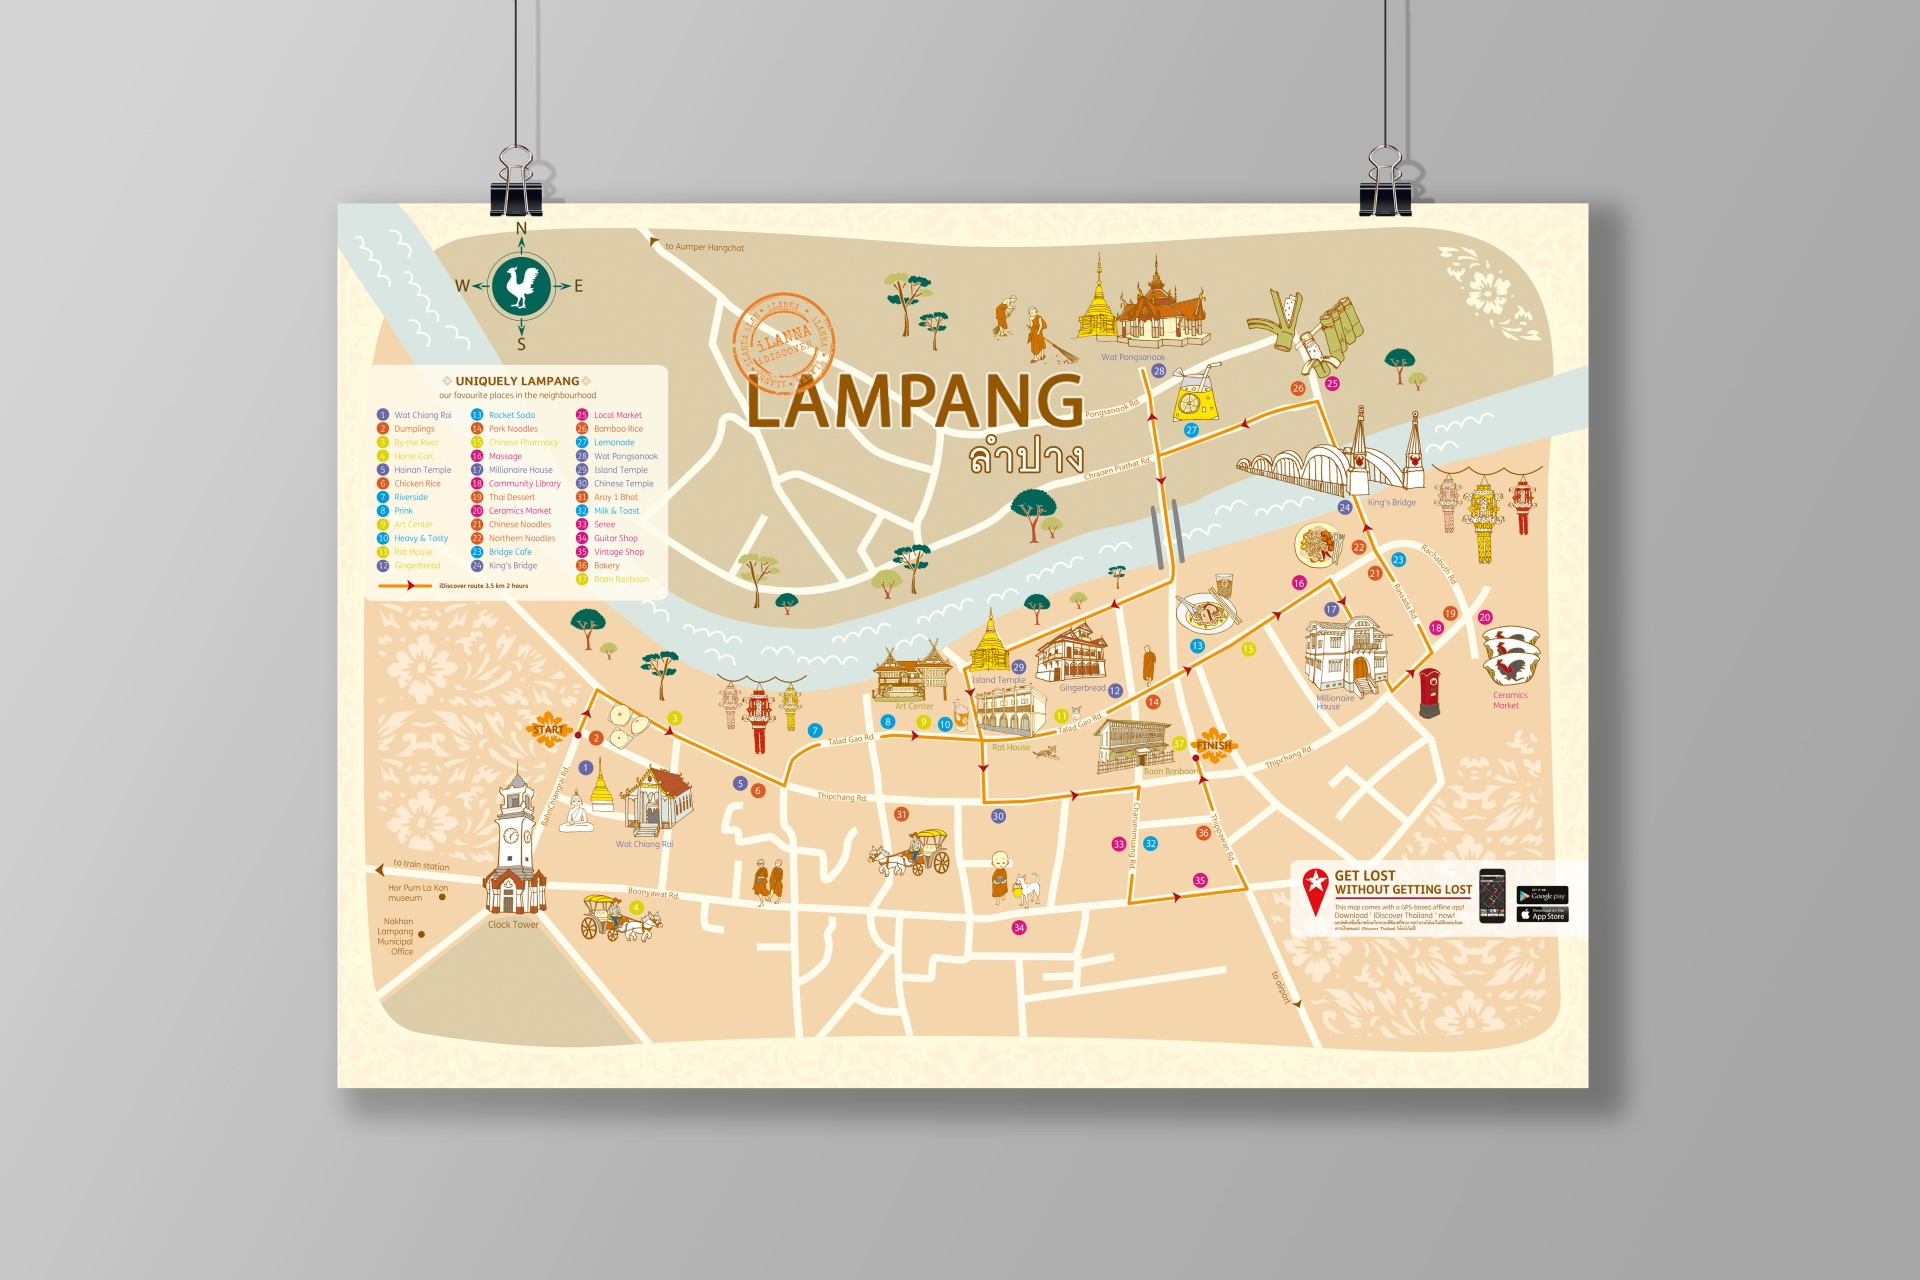 Lampang Thailand Map.Idiscover Lampang Neighbourhood Map